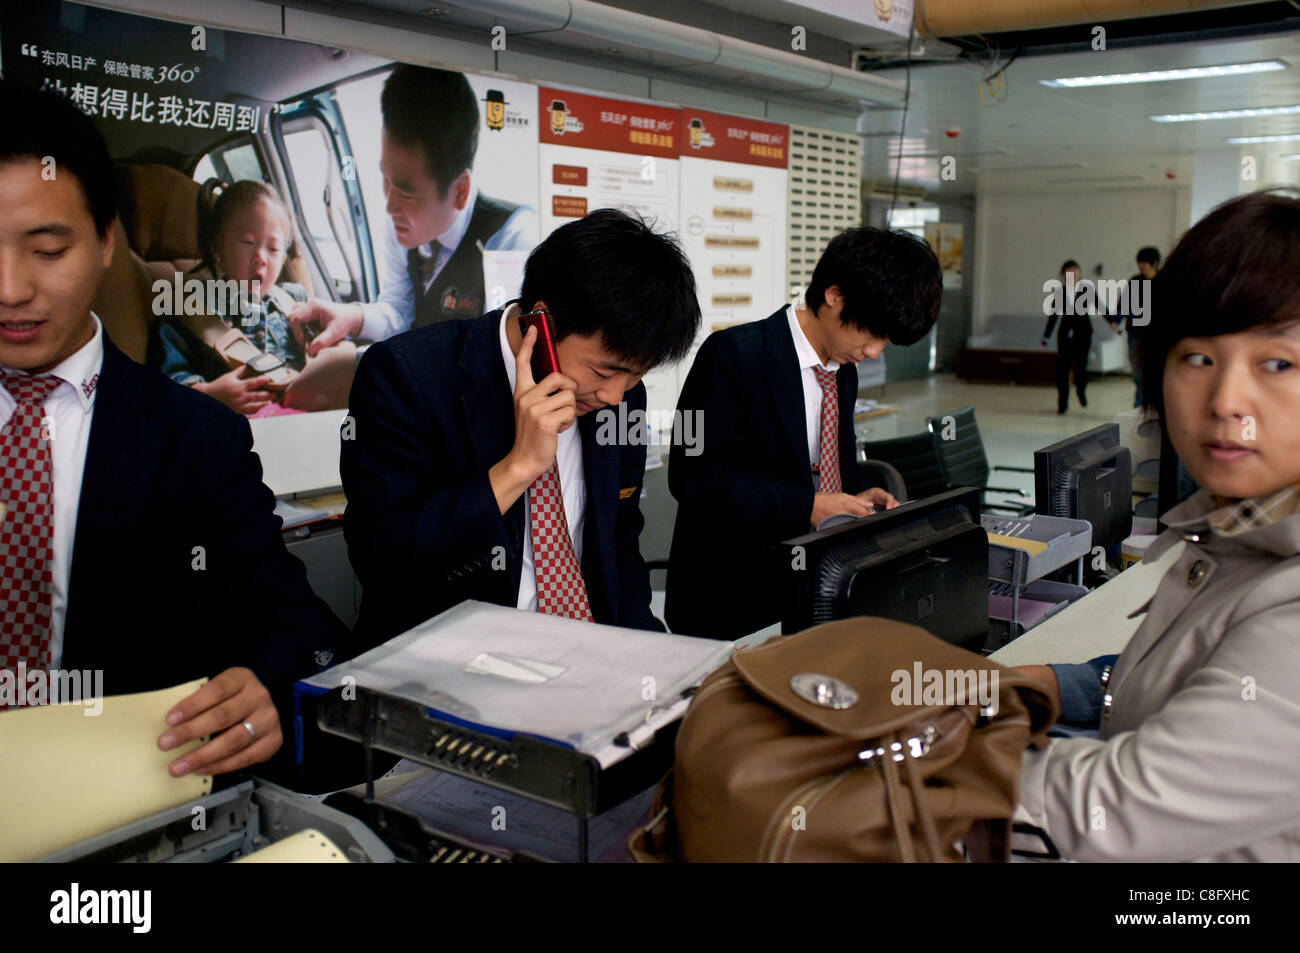 Chinese commercial vehicle insurance agents serve clients in Beijing, China. 22-Oct-2011 - Stock Image